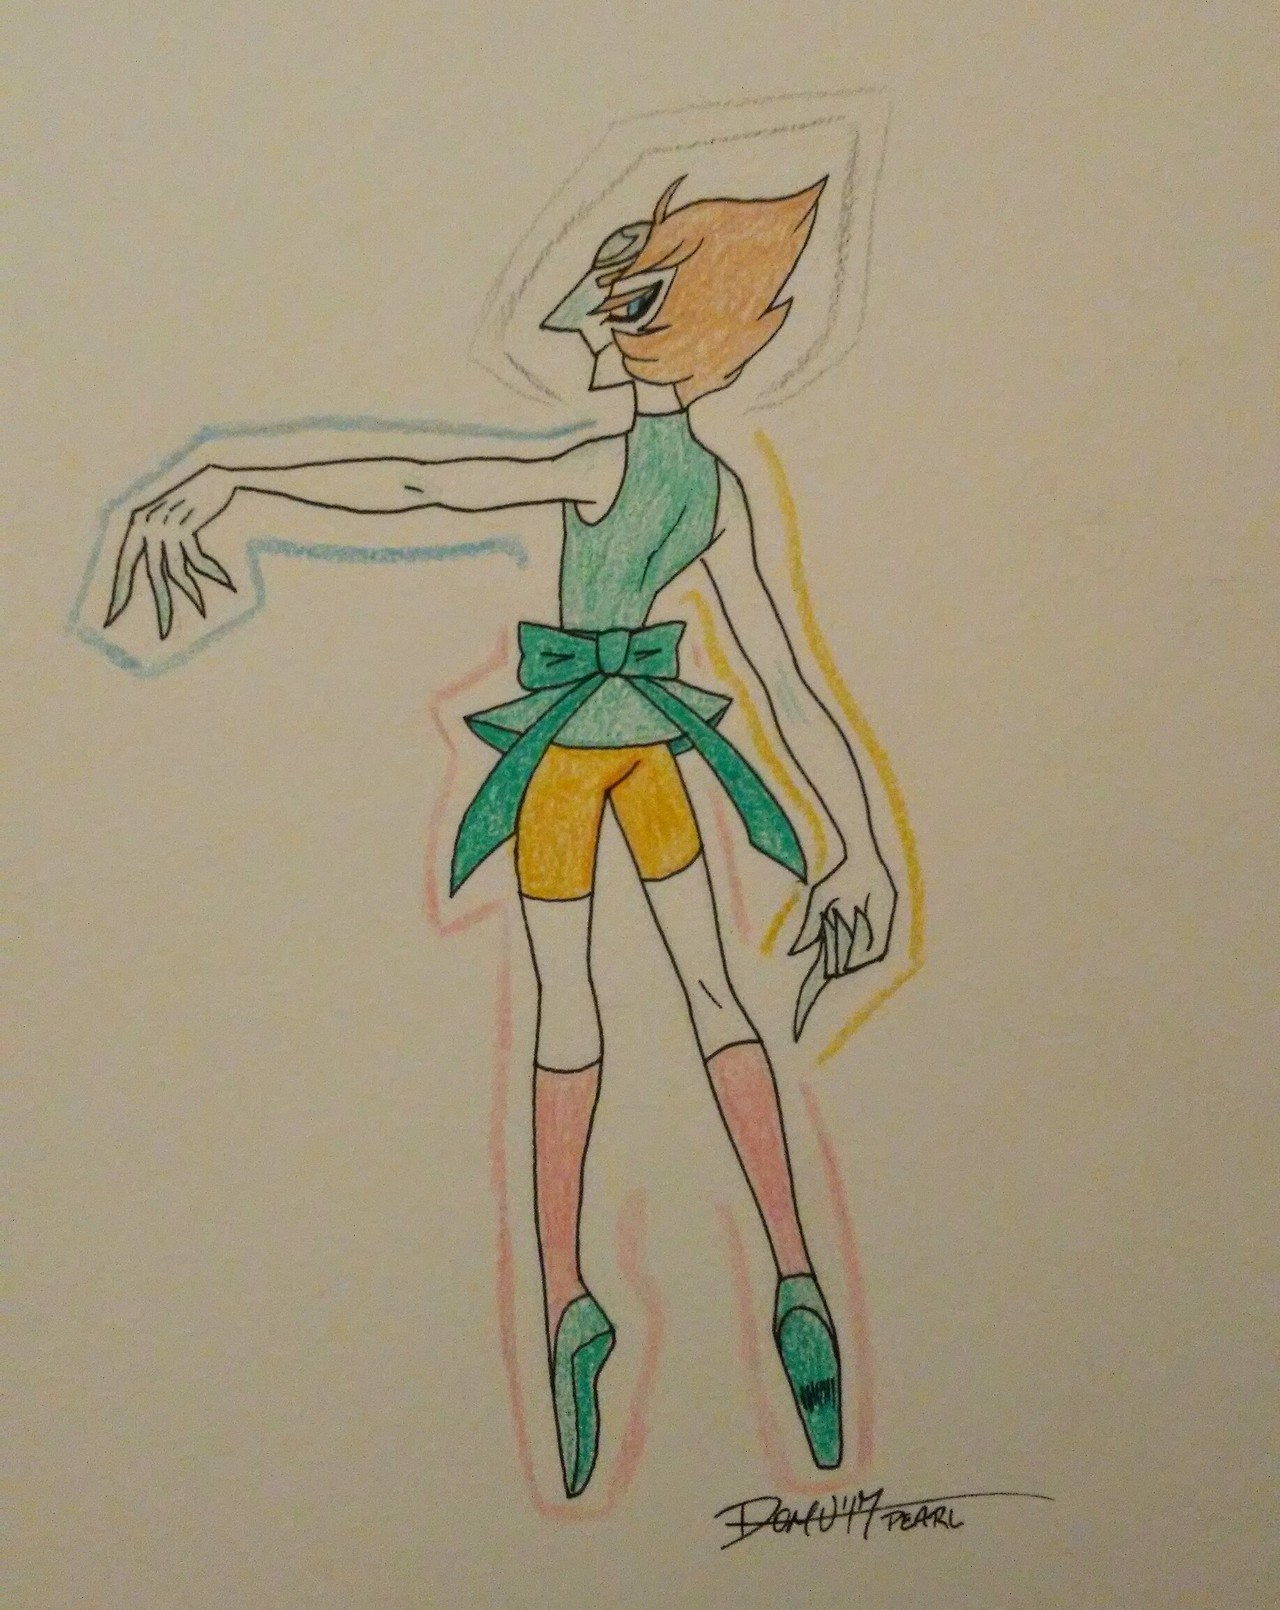 merry christmas, here's a less human looking pearl. no refunds or exchanges